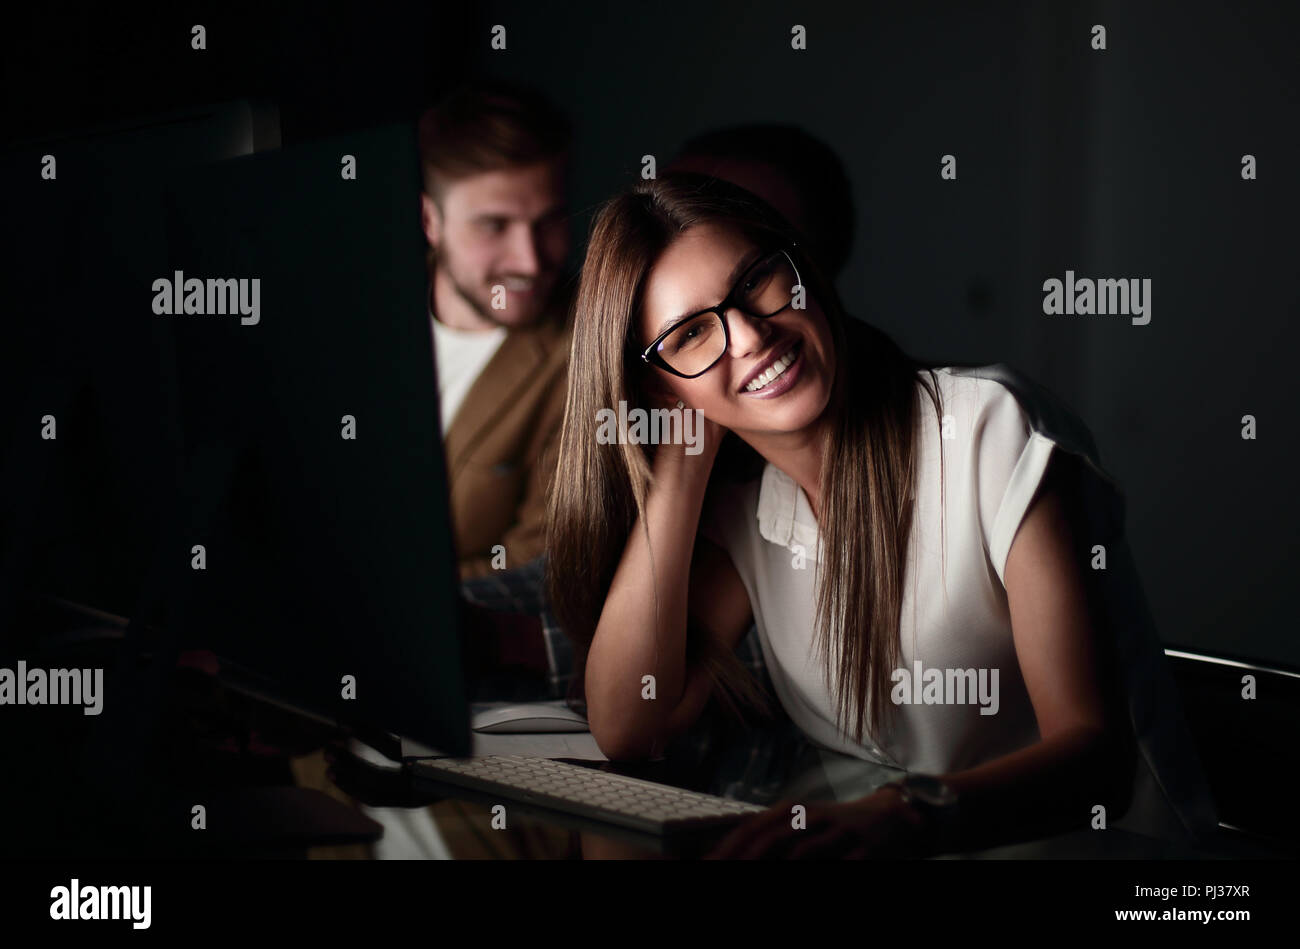 young business woman sitting at her Desk at night - Stock Image